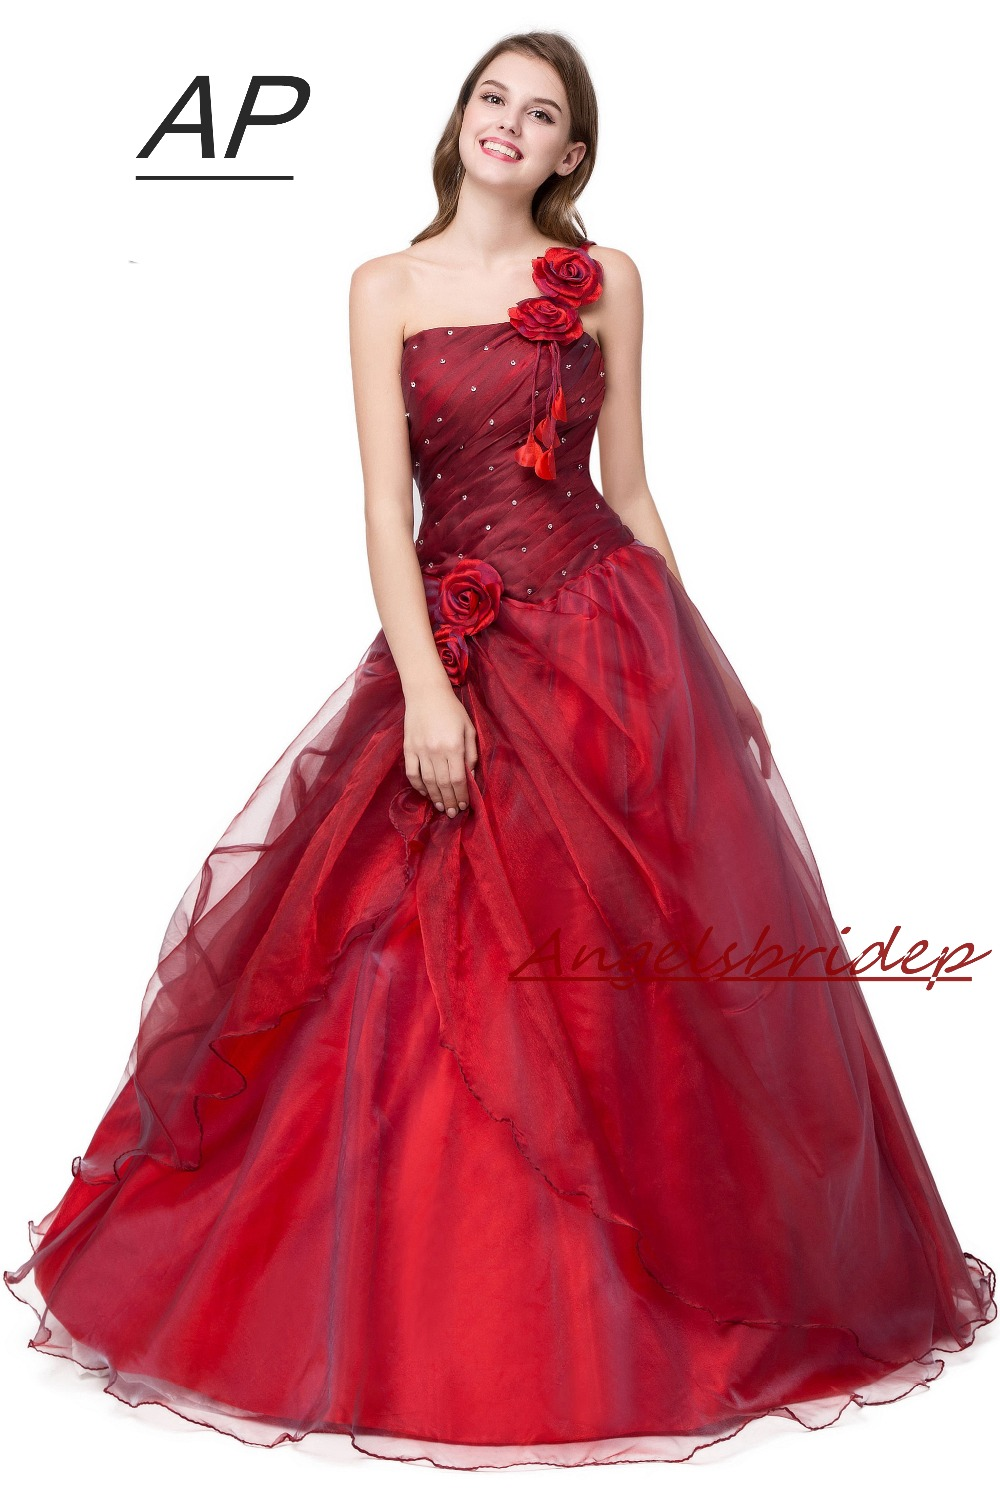 ANGELSBRIDEP Quinceanera Dress Red Vestidos De 15 Anos Sexy One Shoulder Masquerade Ball Gowns Formal Party